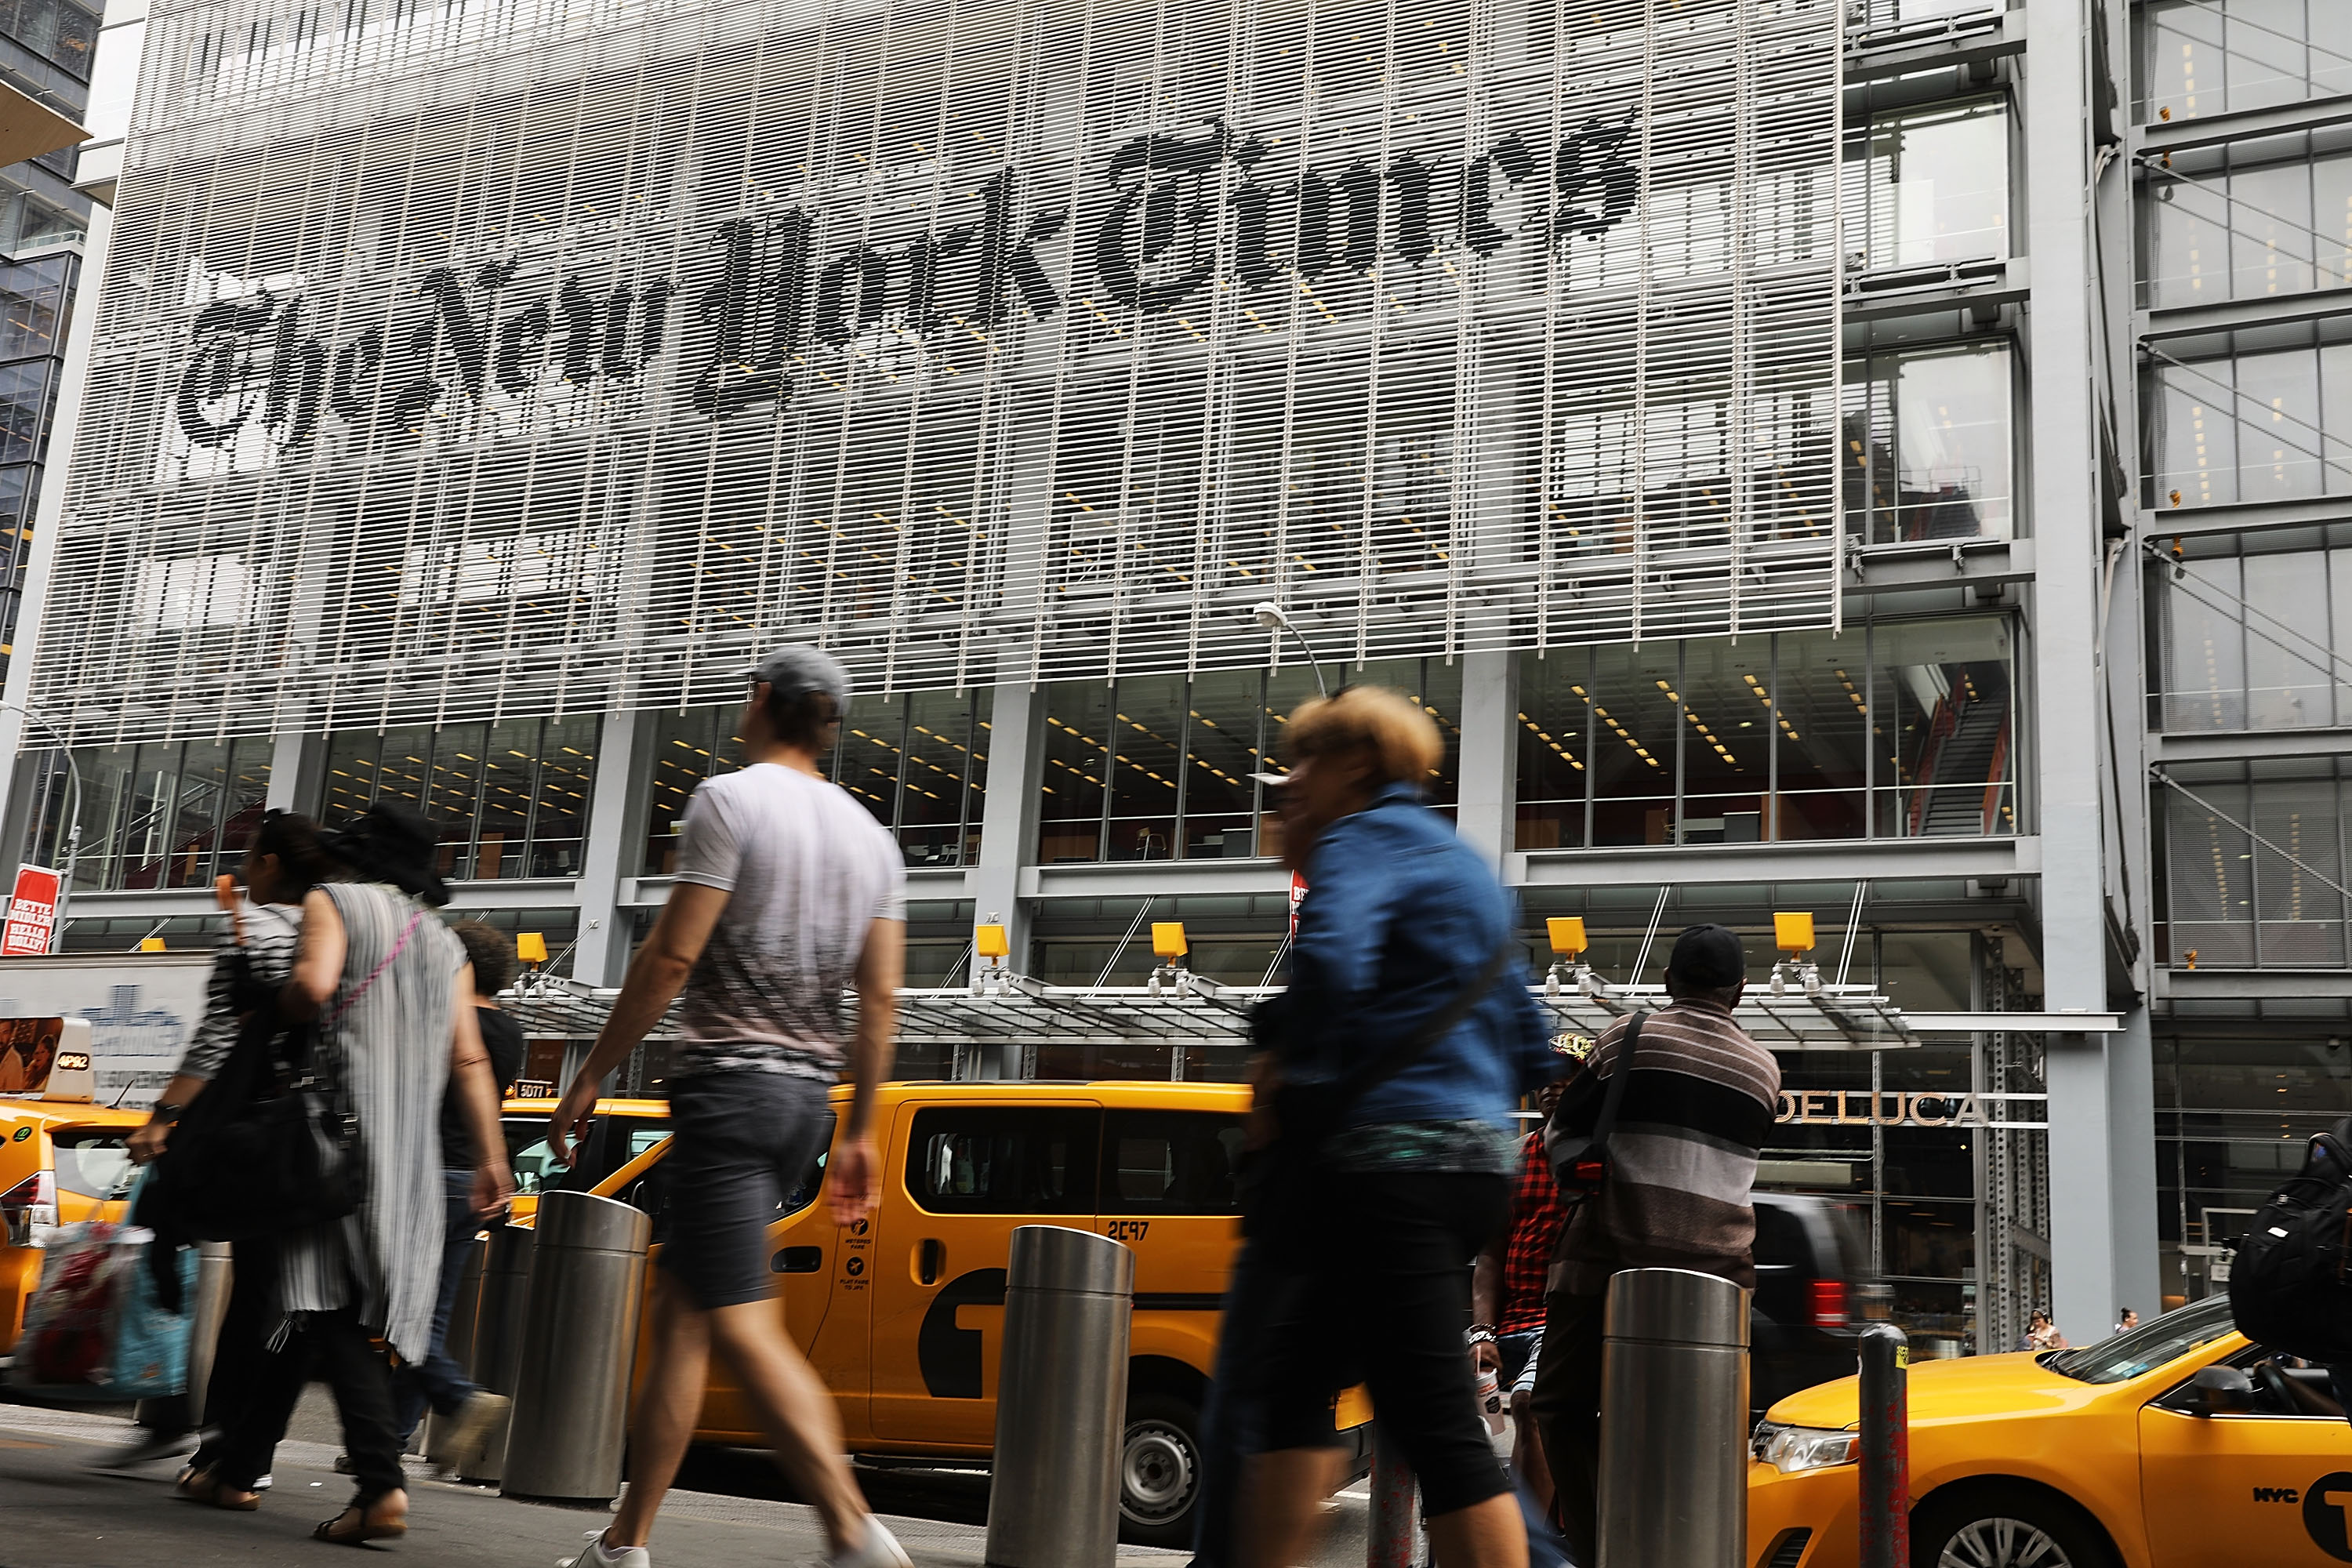 New York Times Employee Apologizes for 'Offensive' Posts